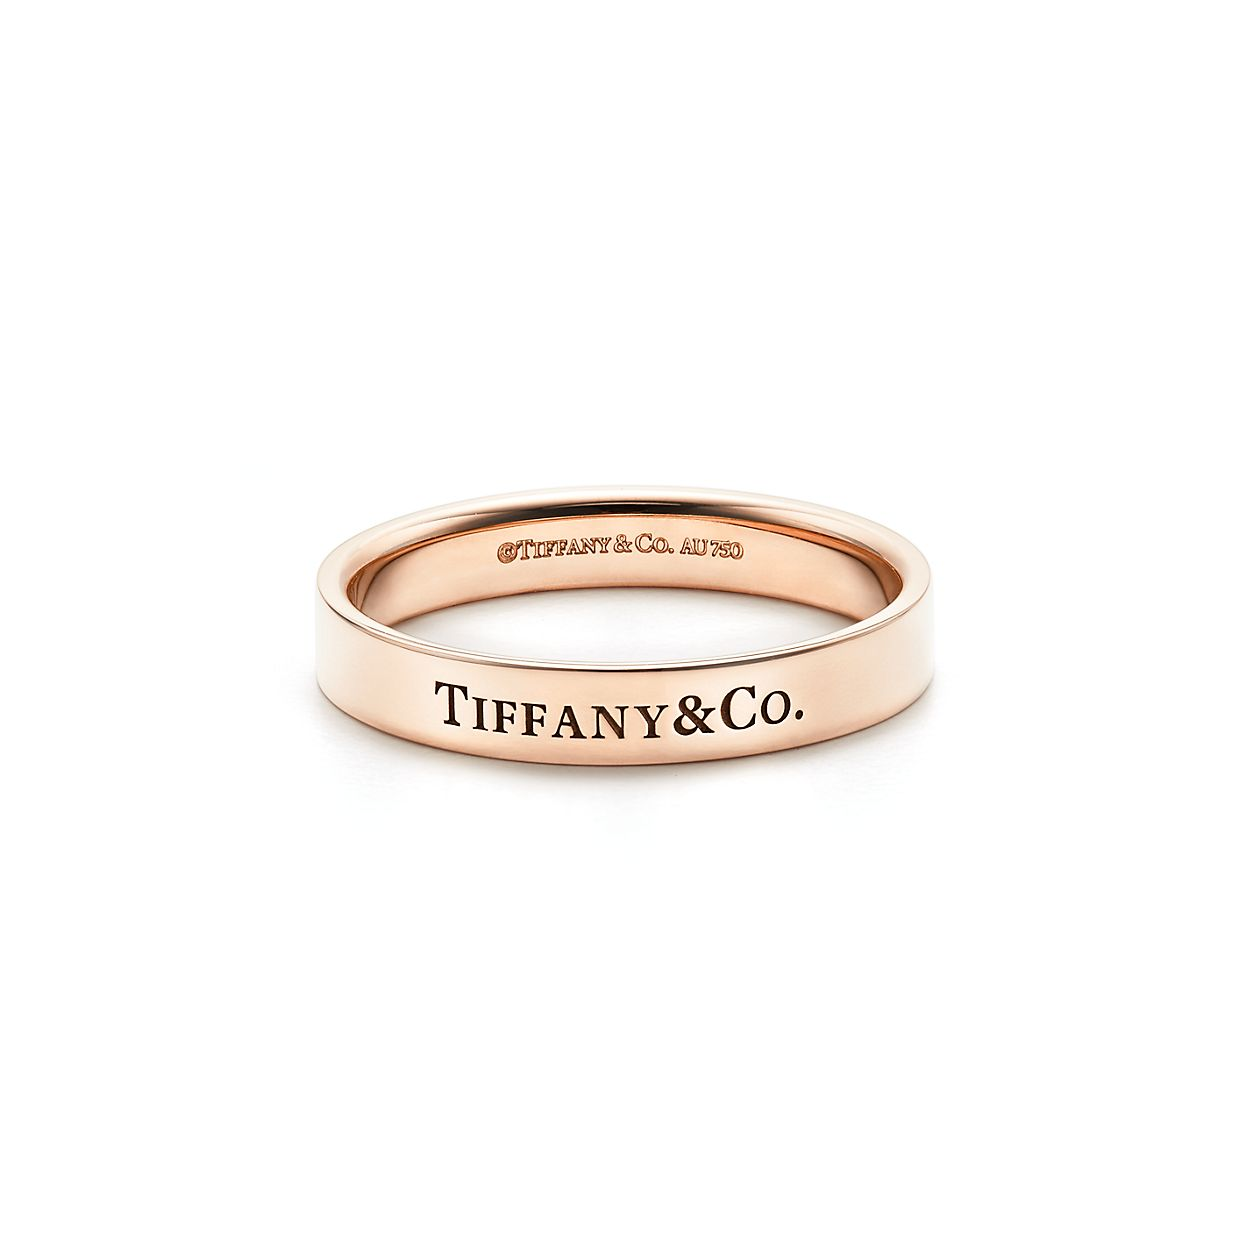 Tiffany & Co band ring in 18k rose gold, 4 mm wide - Size 6 1/2 Tiffany & Co.